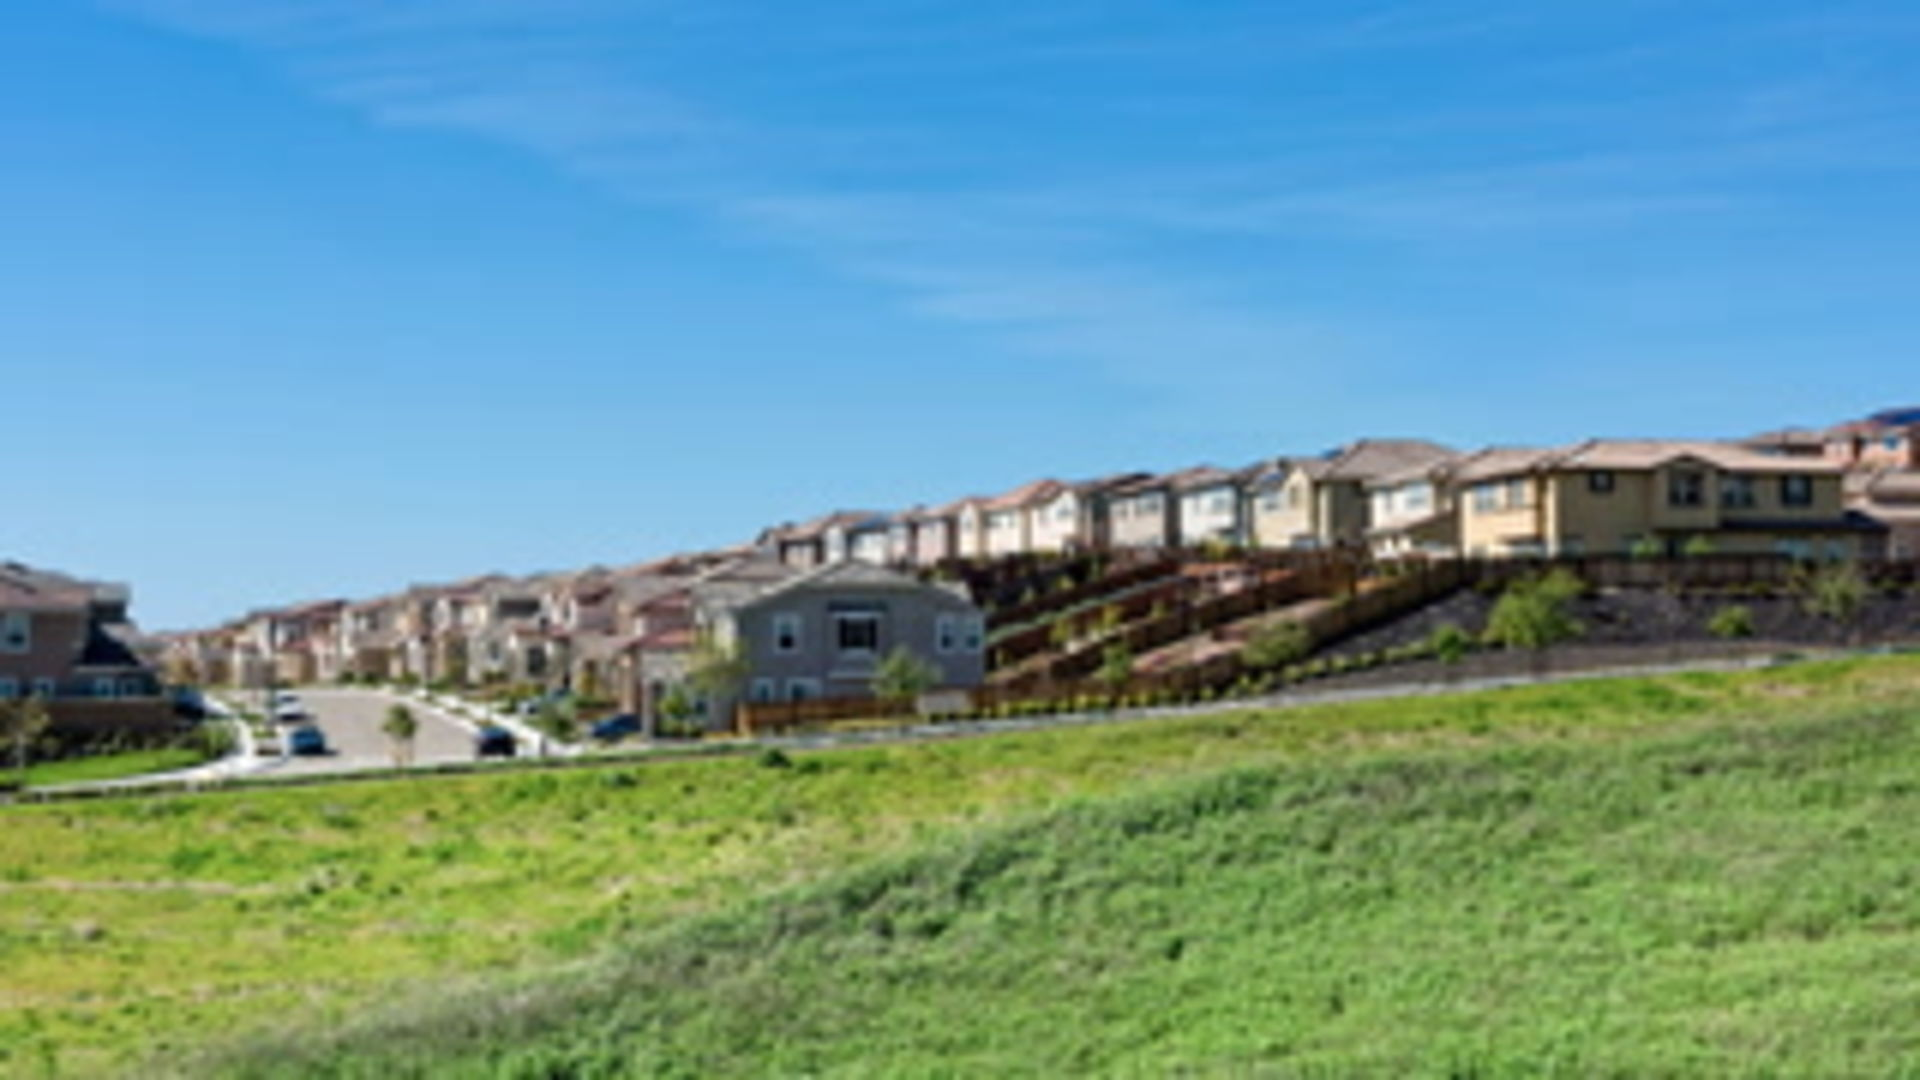 The 5 Fastest Growing Suburbs in America